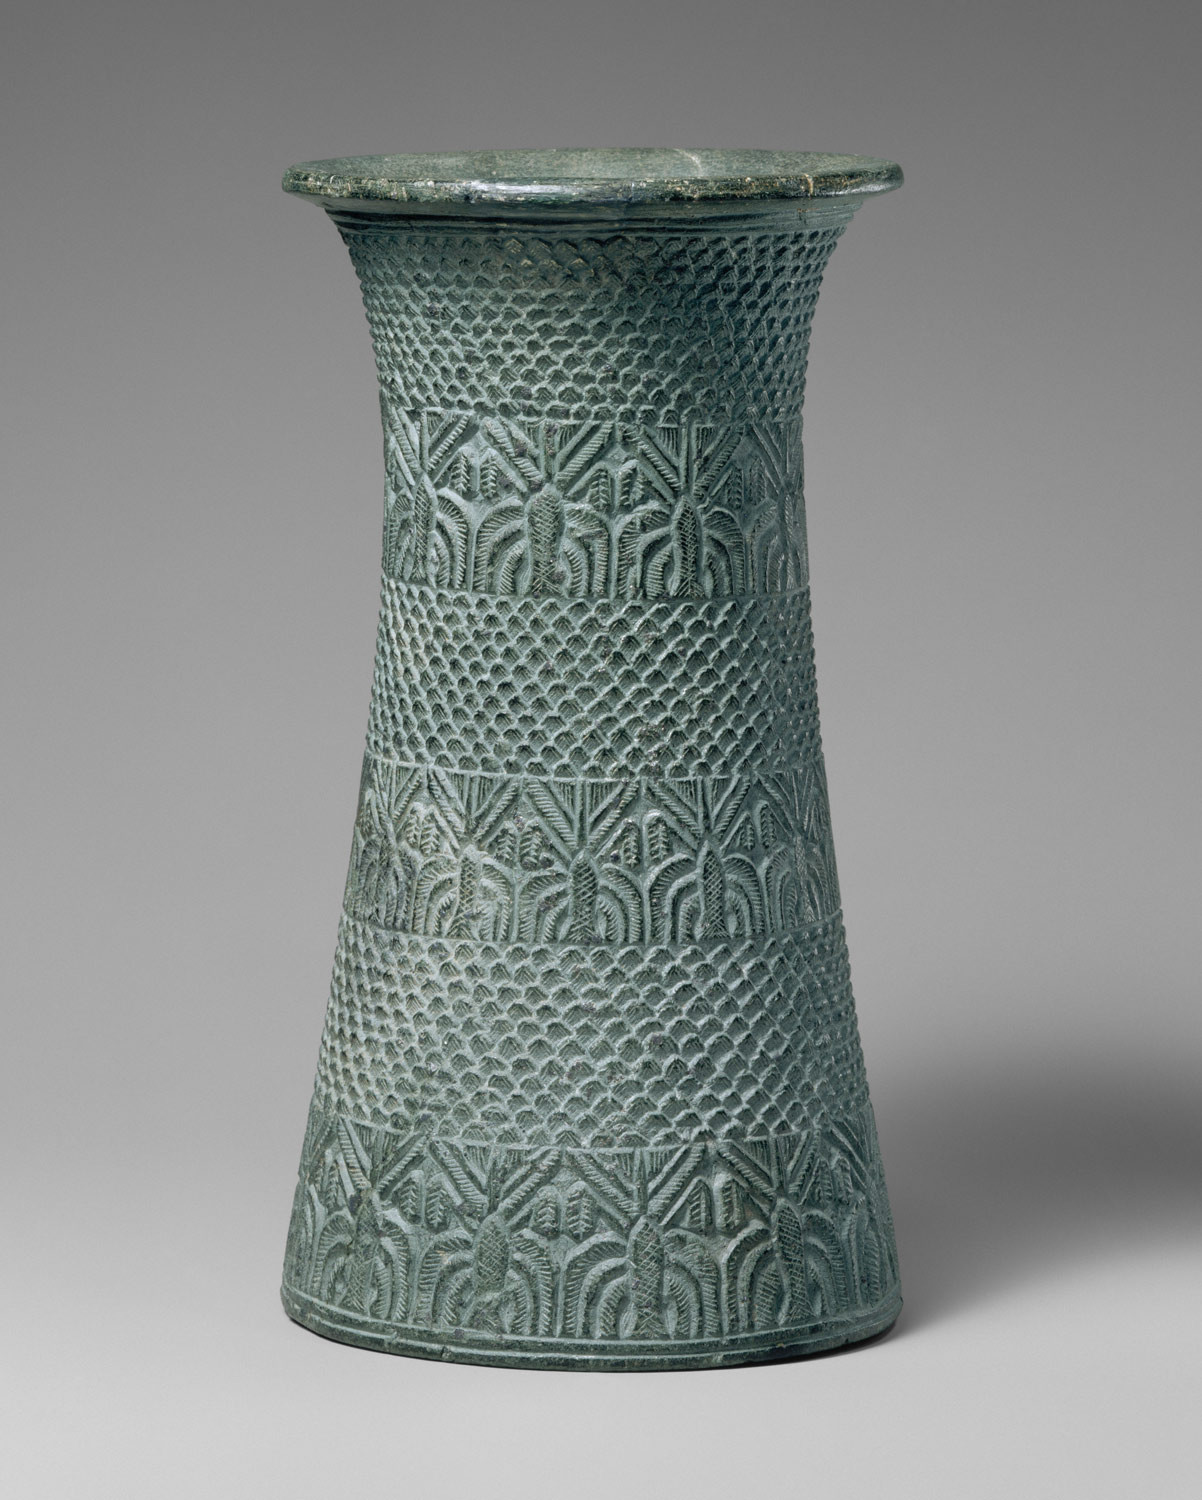 Coors Pottery Vase Of Art Of the First Cities In the Third Millennium B C Essay Throughout Vase with Overlapping Pattern and Three Bands Of Palm Trees